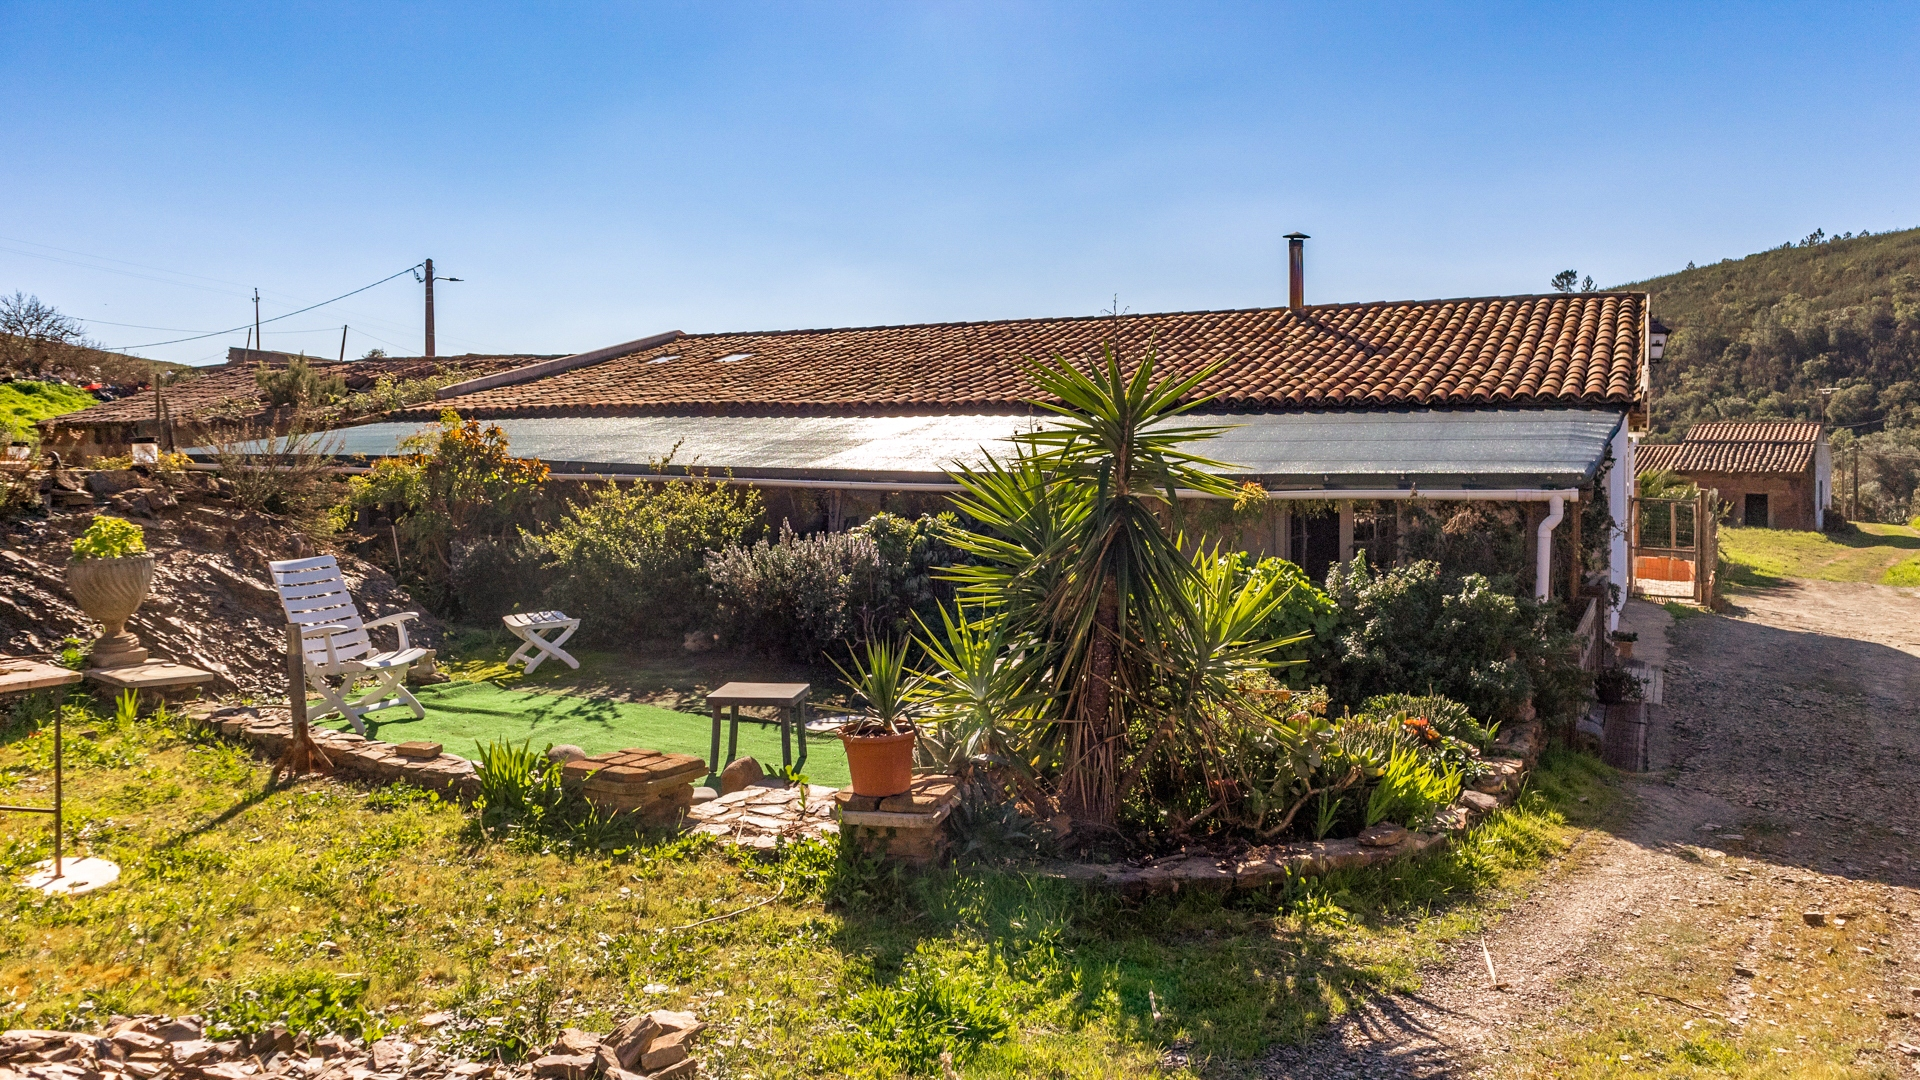 2-bedroom country house and 1-bedroom annex, ruin and 2 lakes on 6ha plot, near Mexilhoeira Grande, West Algarve | LG1355